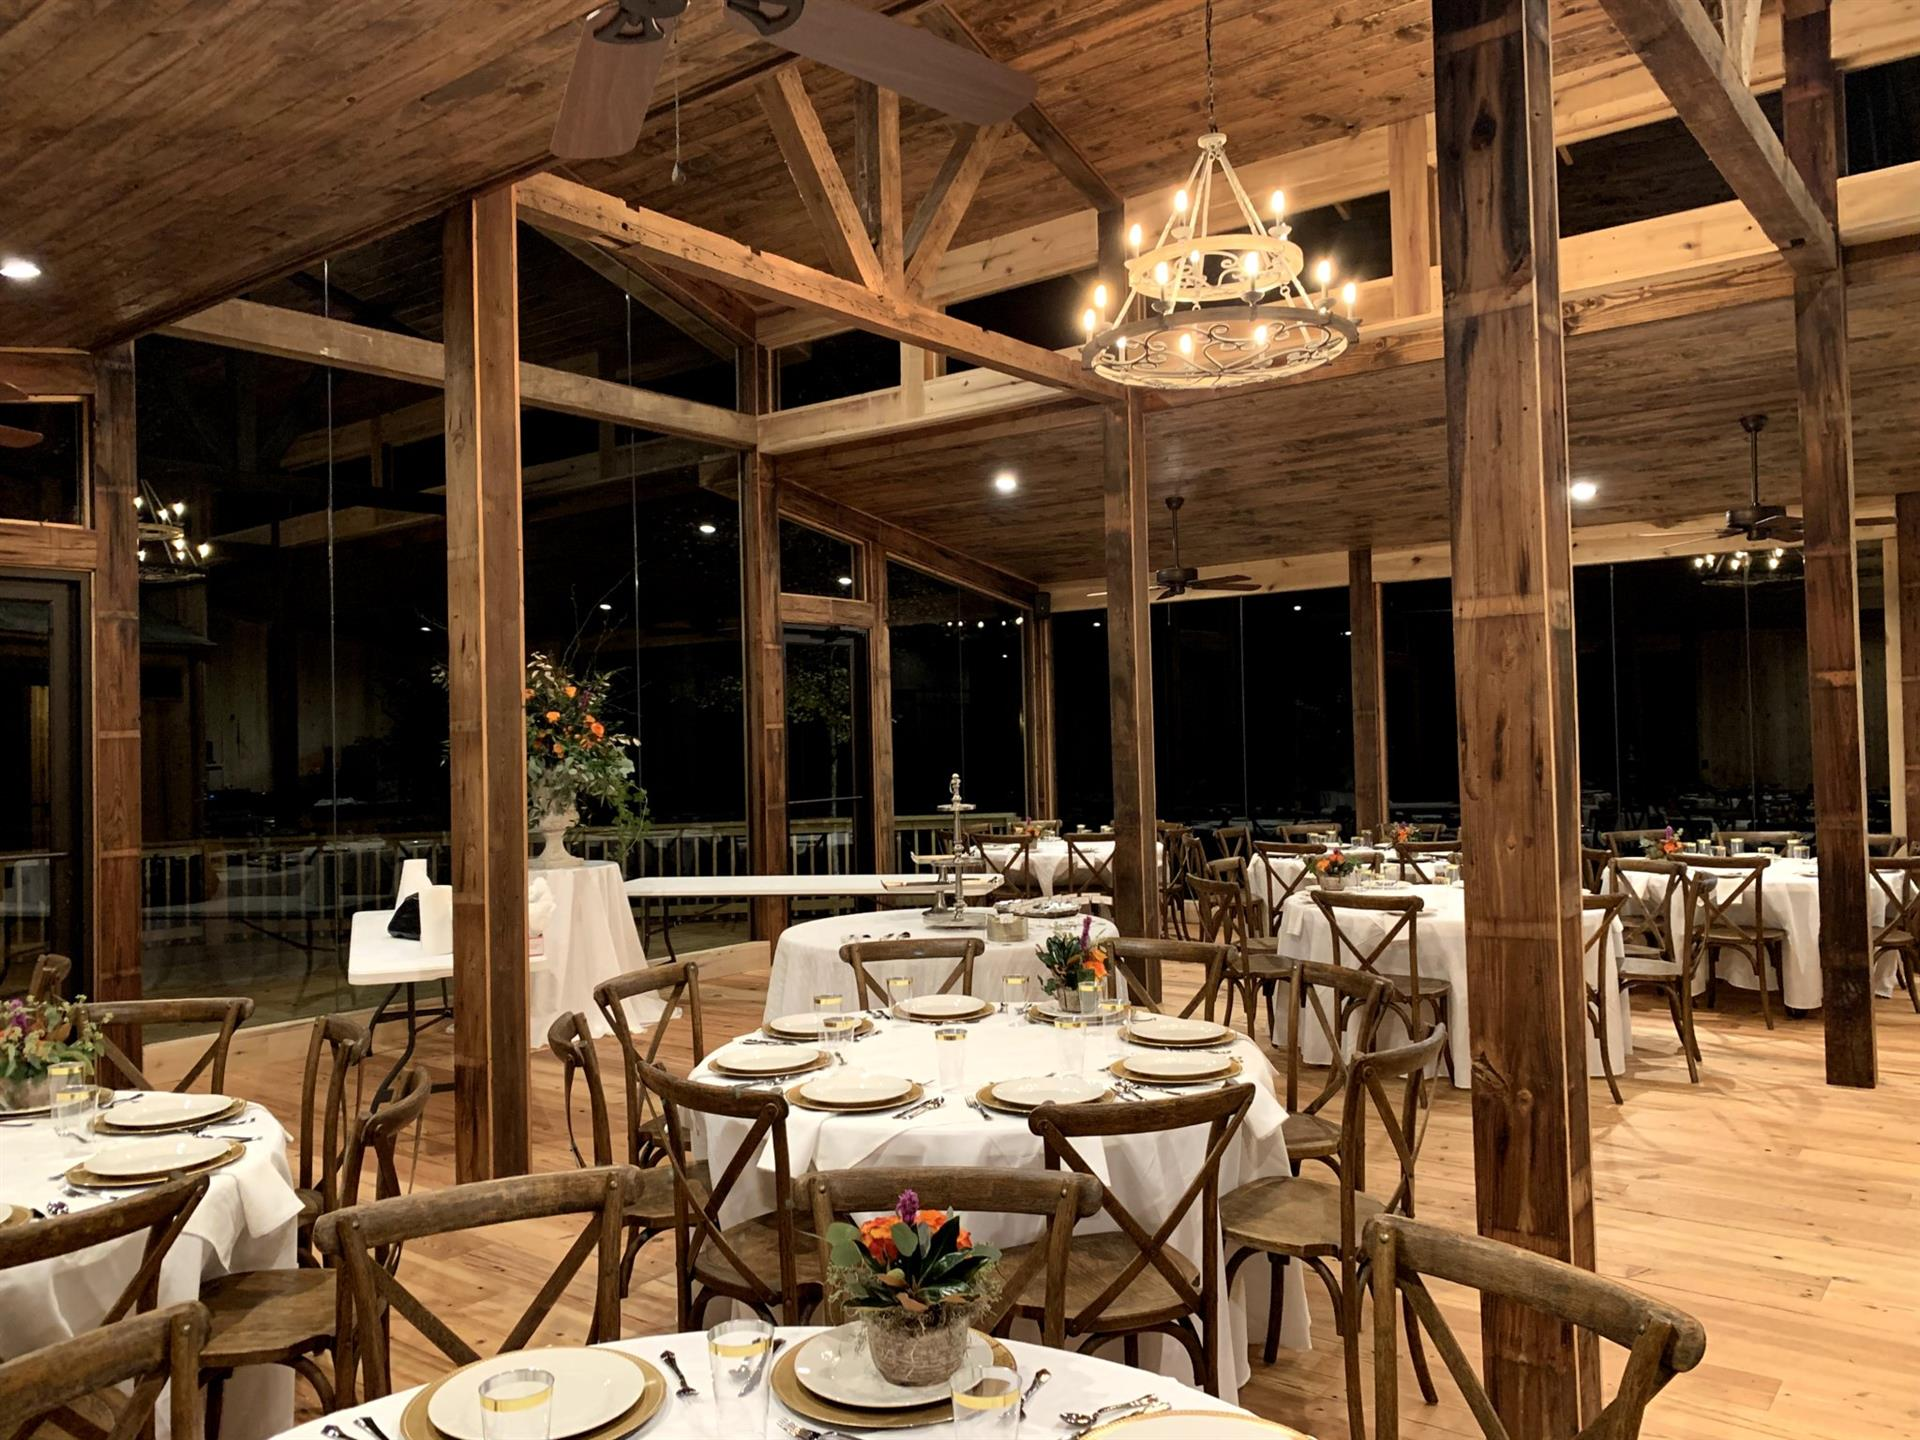 large room with floor to ceiling glass windows, wooden ceiling and columns. Multiple circle tables and chairs in the room with plates set